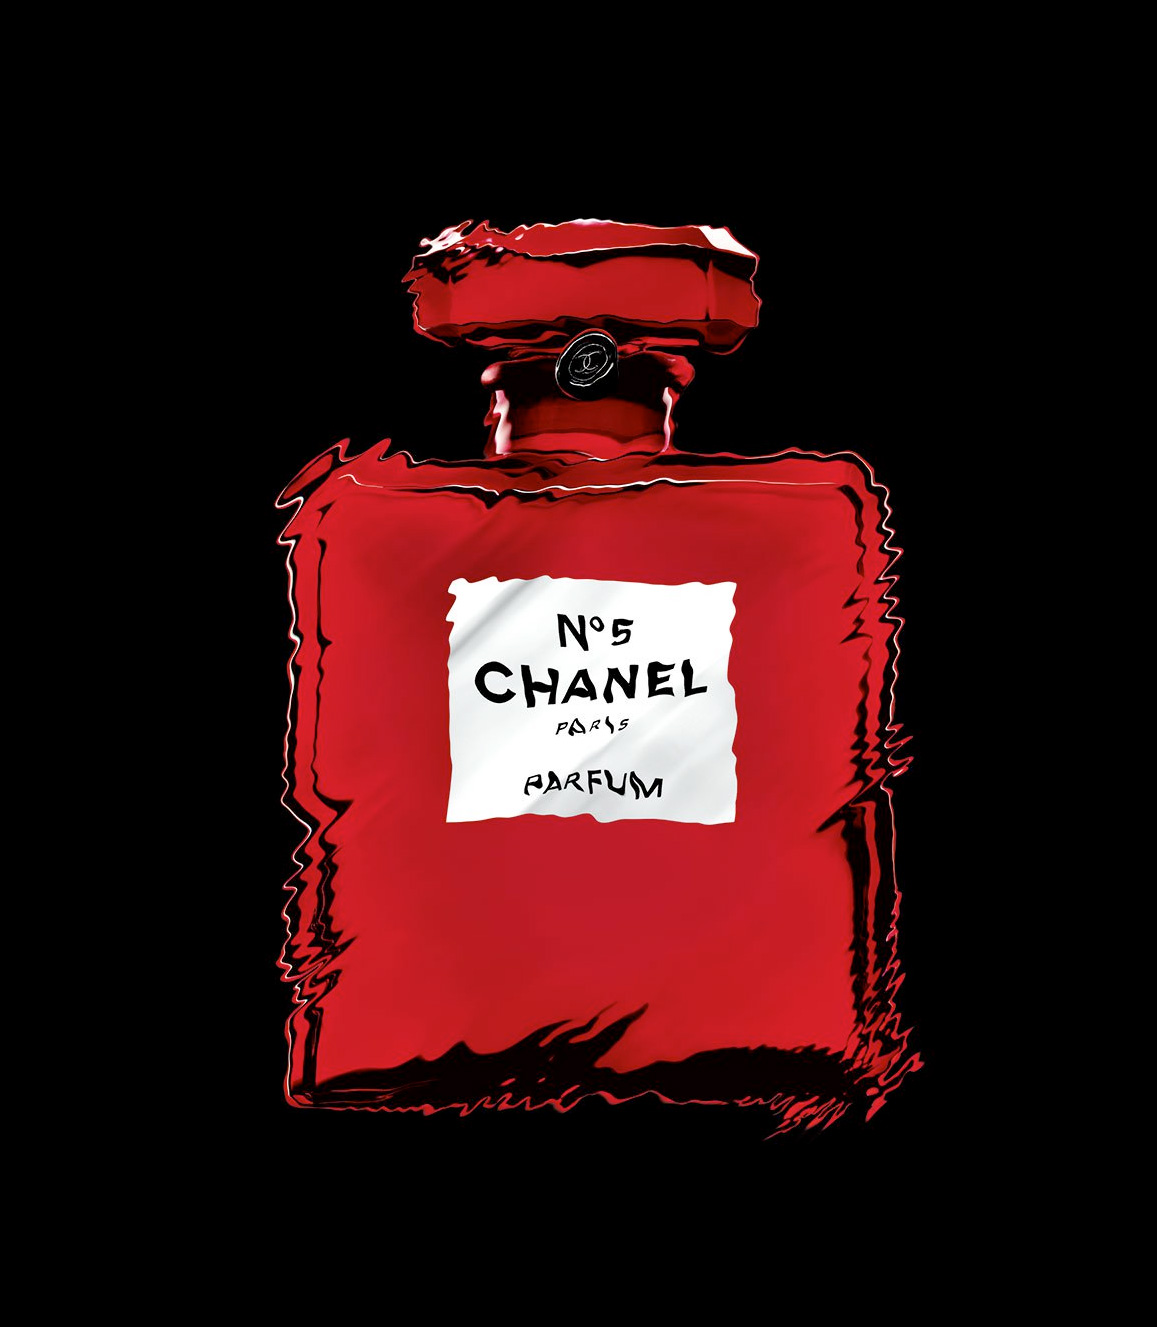 Chanel No 5 Red Editions New Fragrances